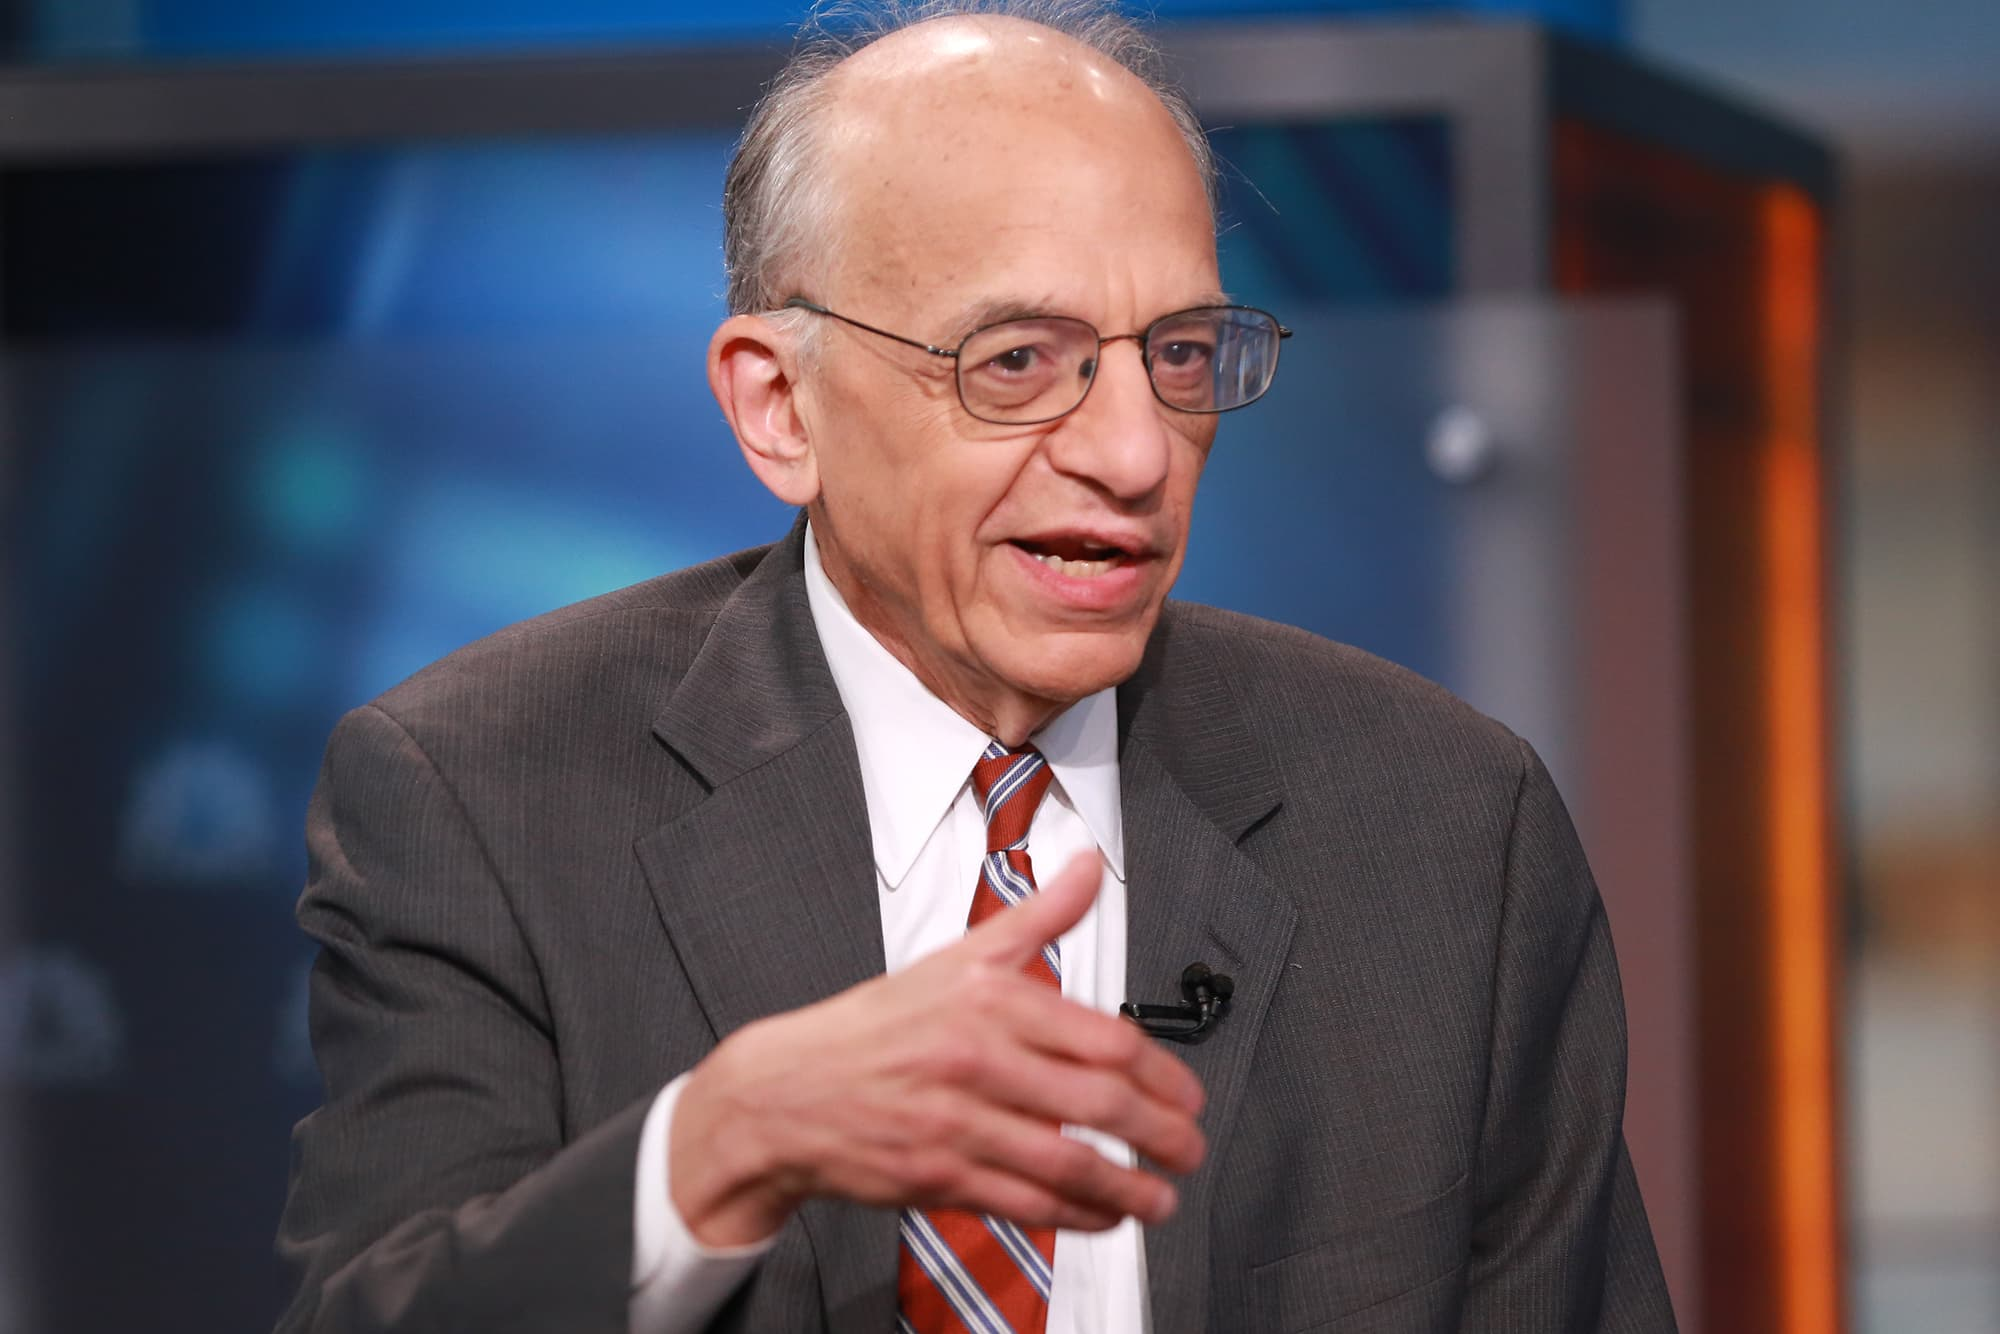 Jeremy Siegel says the stock market could go up 30% before the boom comes to an end